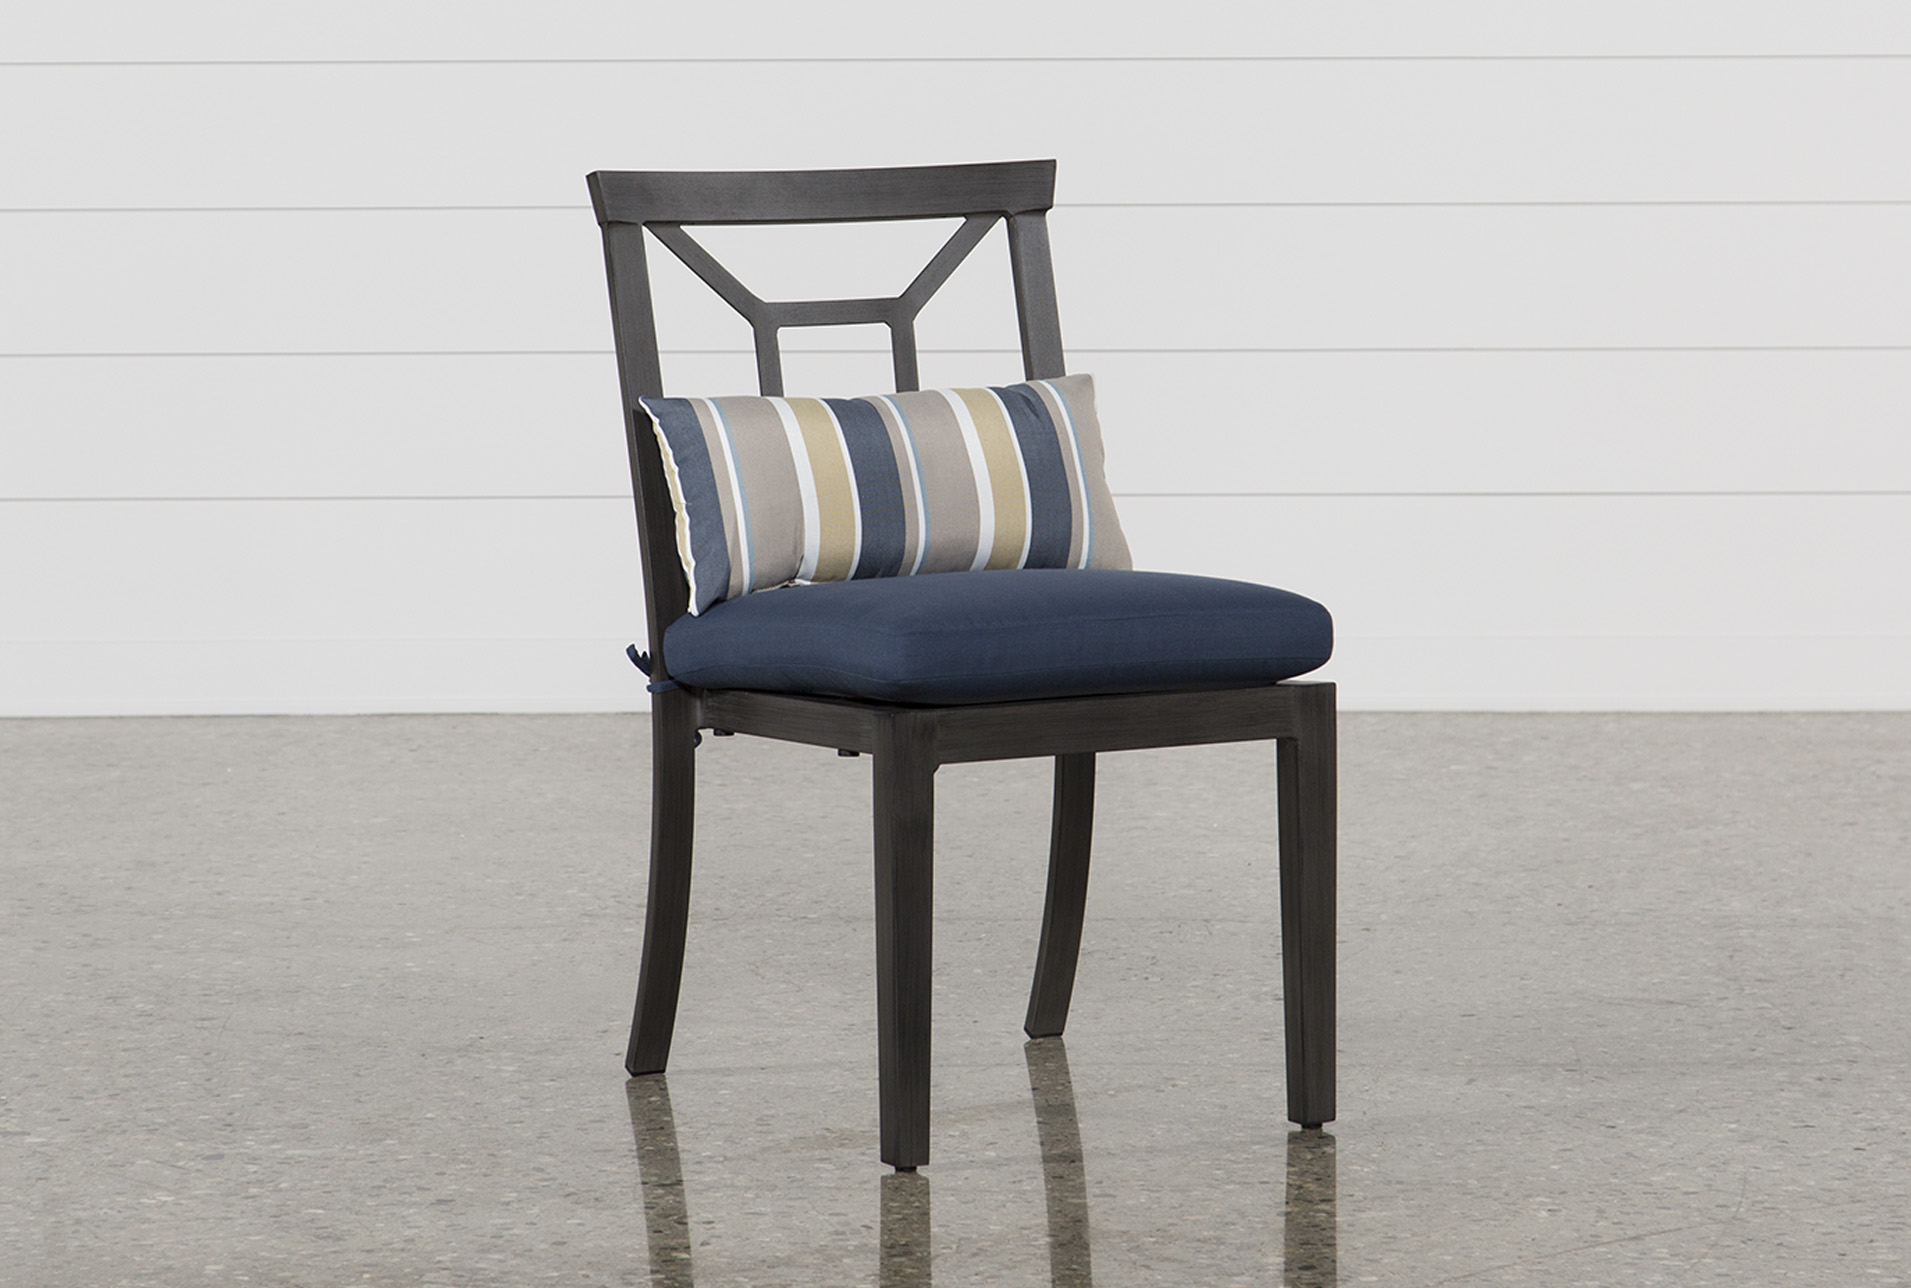 medium resolution of outdoor martinique navy dining chair qty 1 has been successfully added to your cart